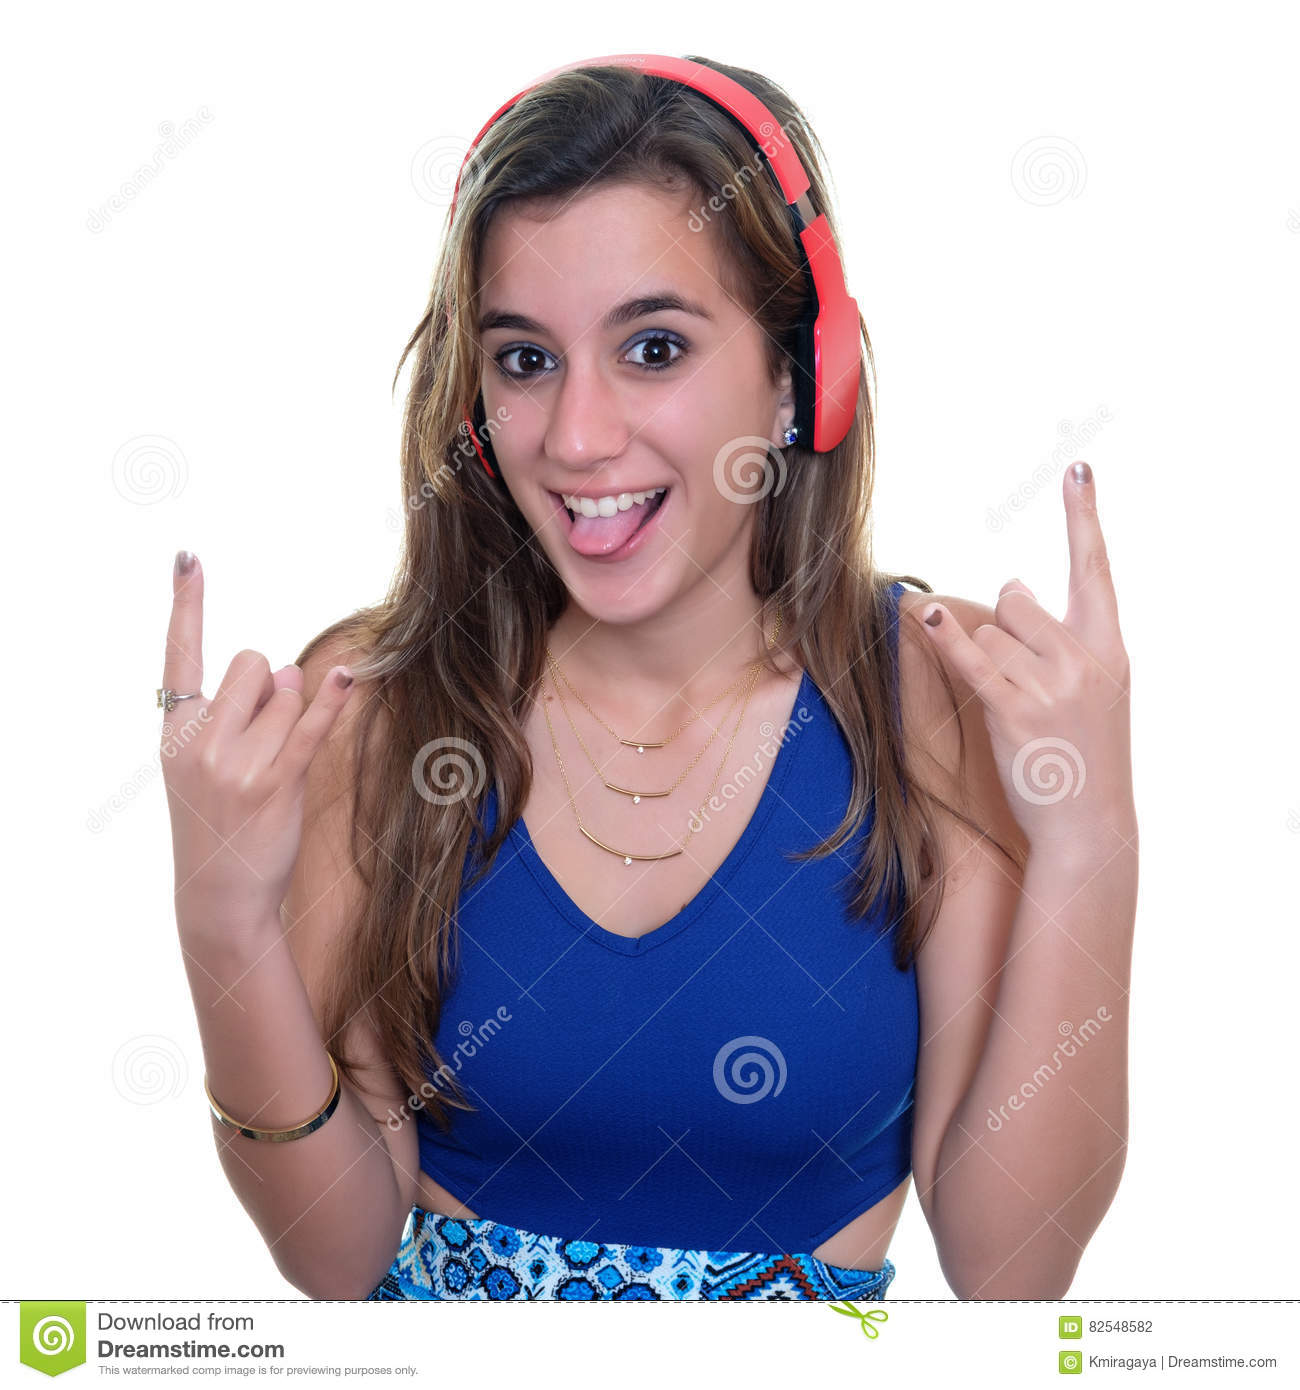 Teenage girl listening to music on wireless headphones isolated